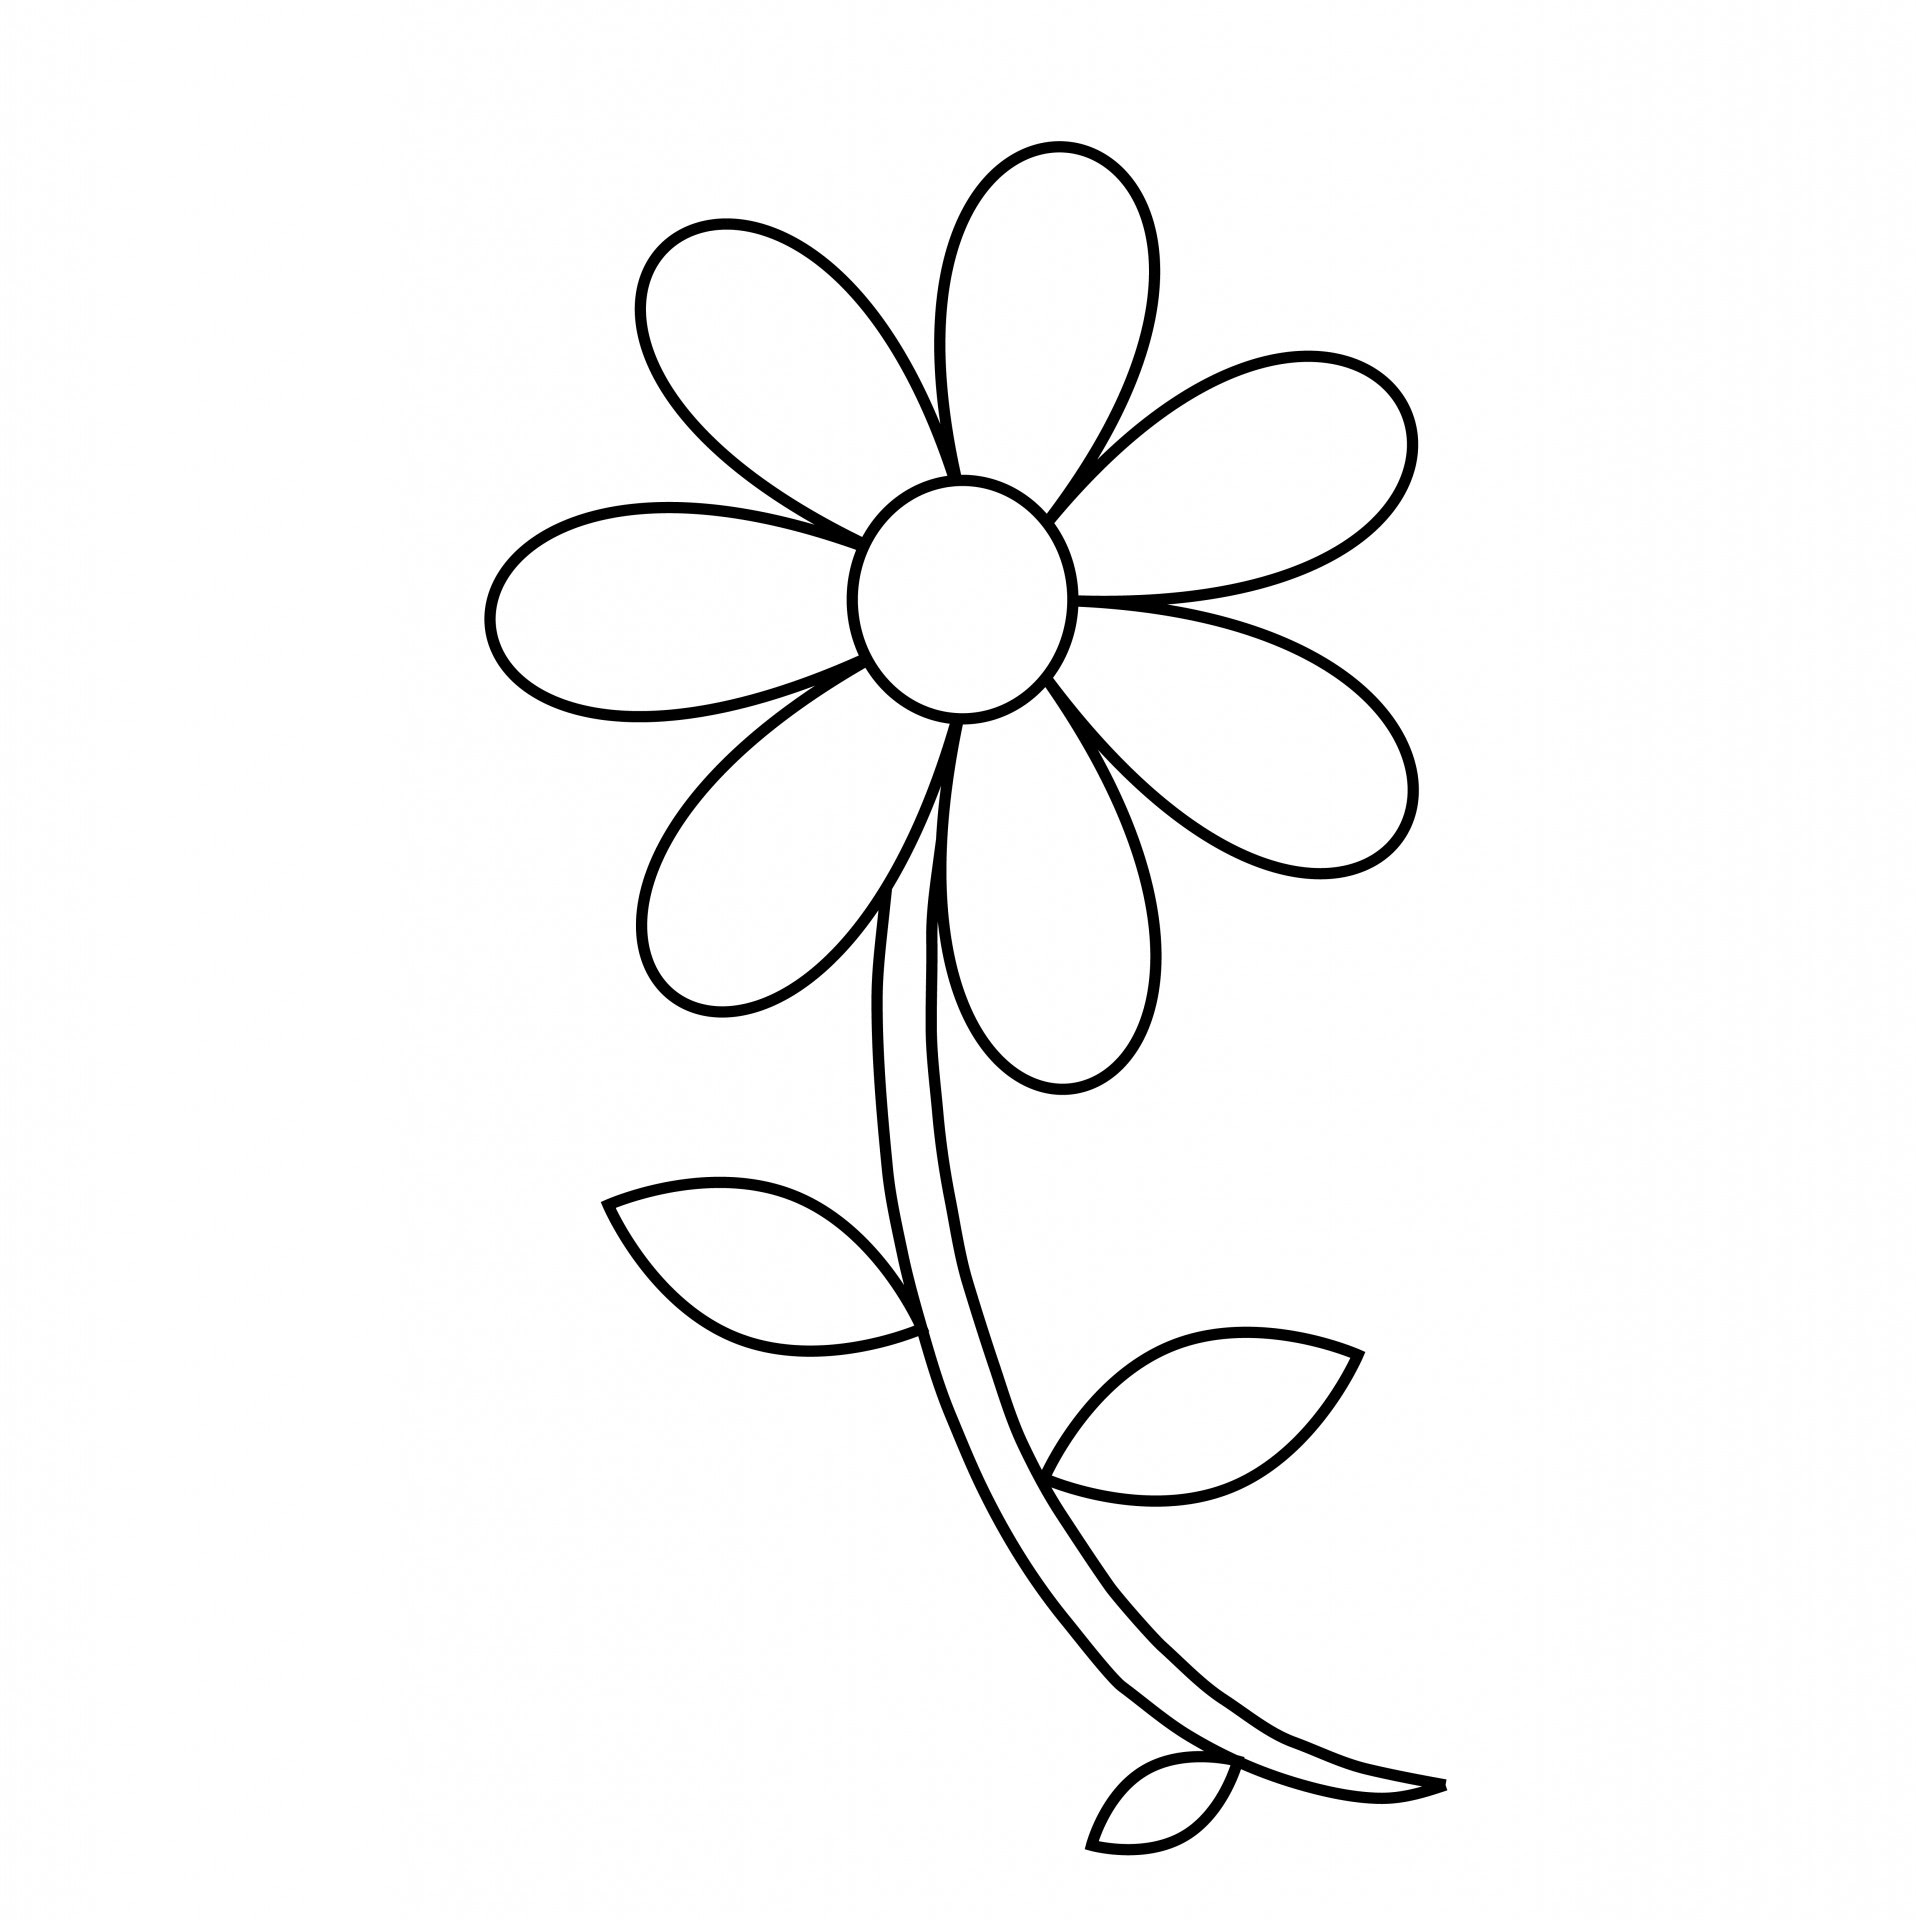 Free Black And White Flower Outline Download Free Clip Art Free Clip Art On Clipart Library